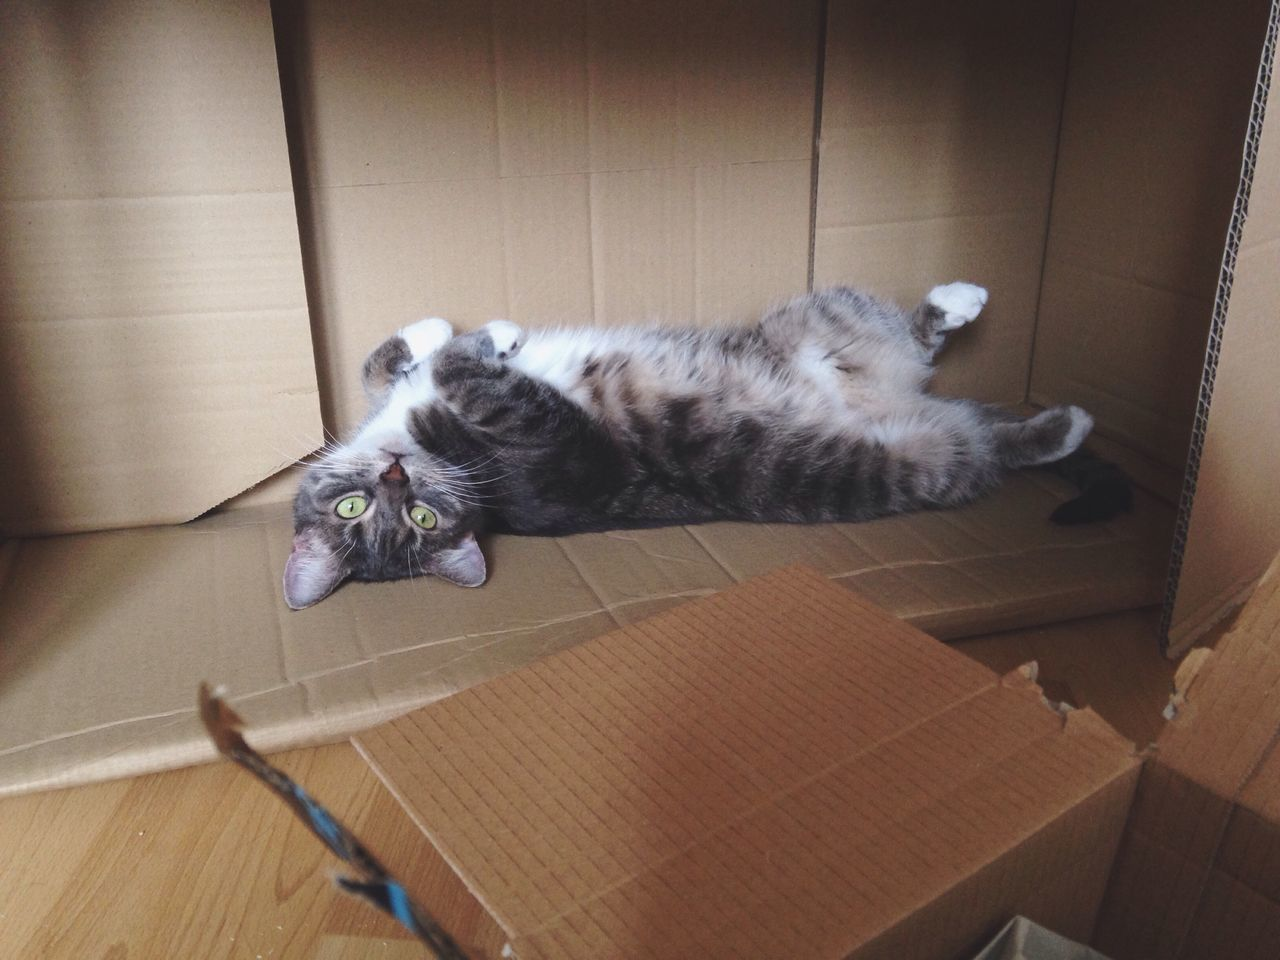 Domestic Cat Pets Domestic Animals Mammal Indoors  Animal Themes Feline One Animal Relaxation No People Cardboard Box Box - Container Lying On Back Tabby Cat